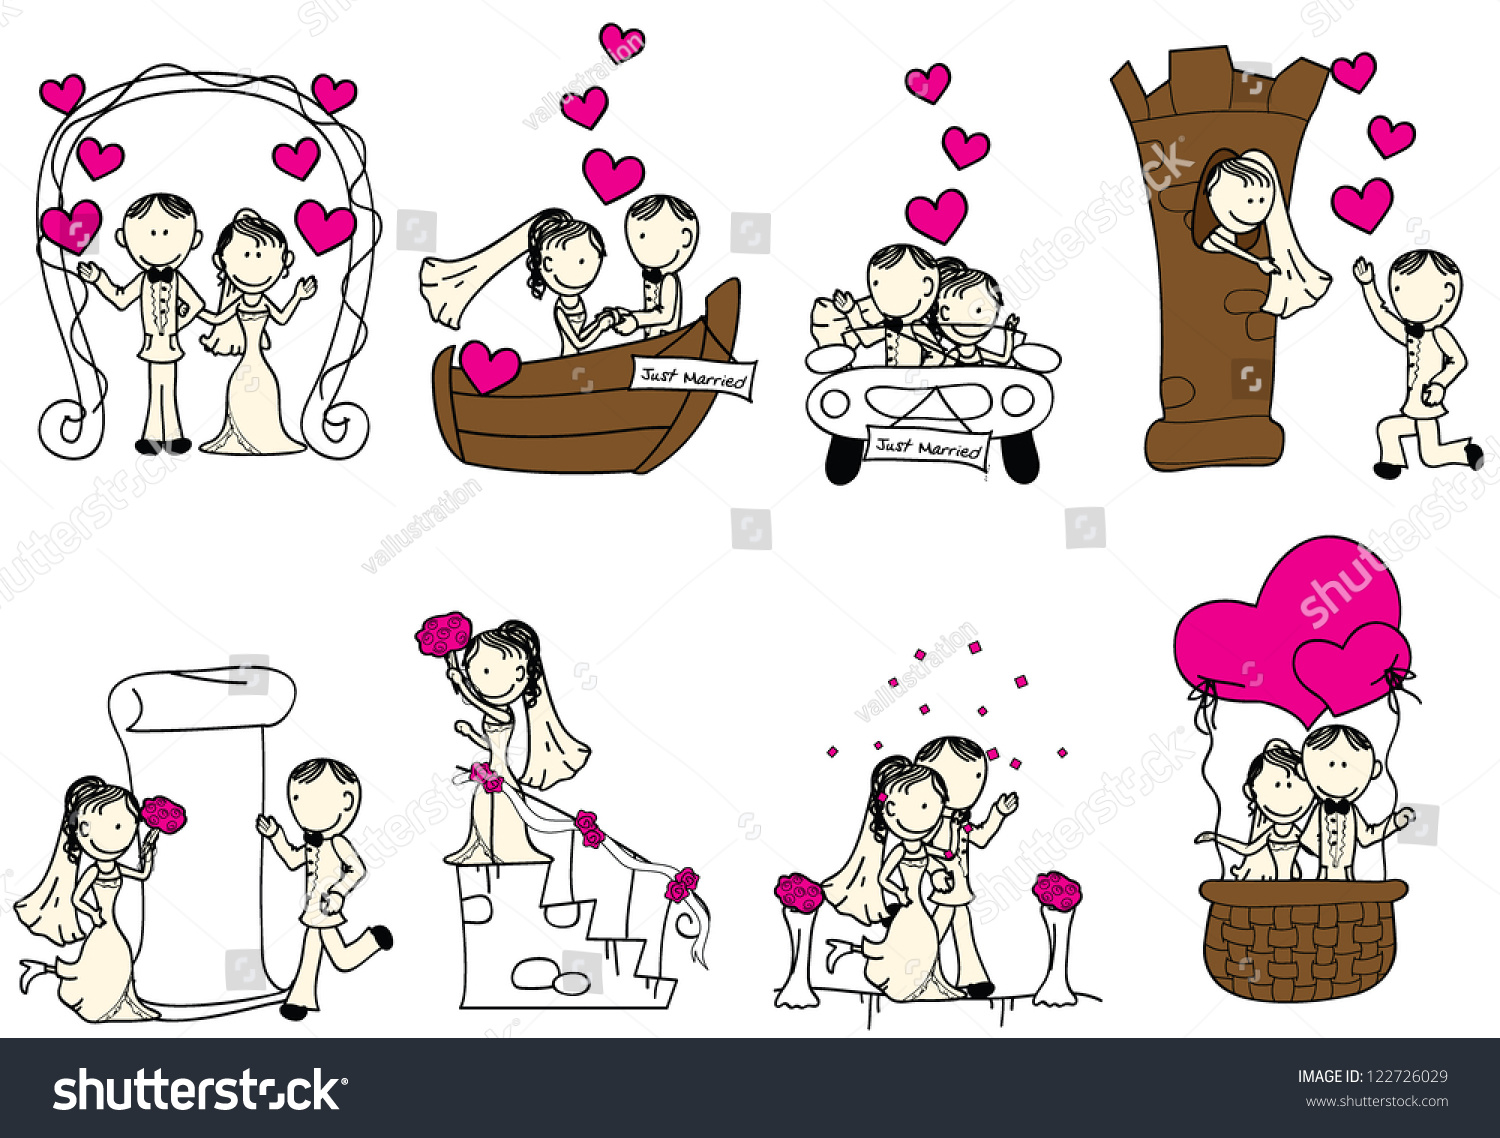 Cute Wedding Couple With Pink Hearts Stock Vector ...